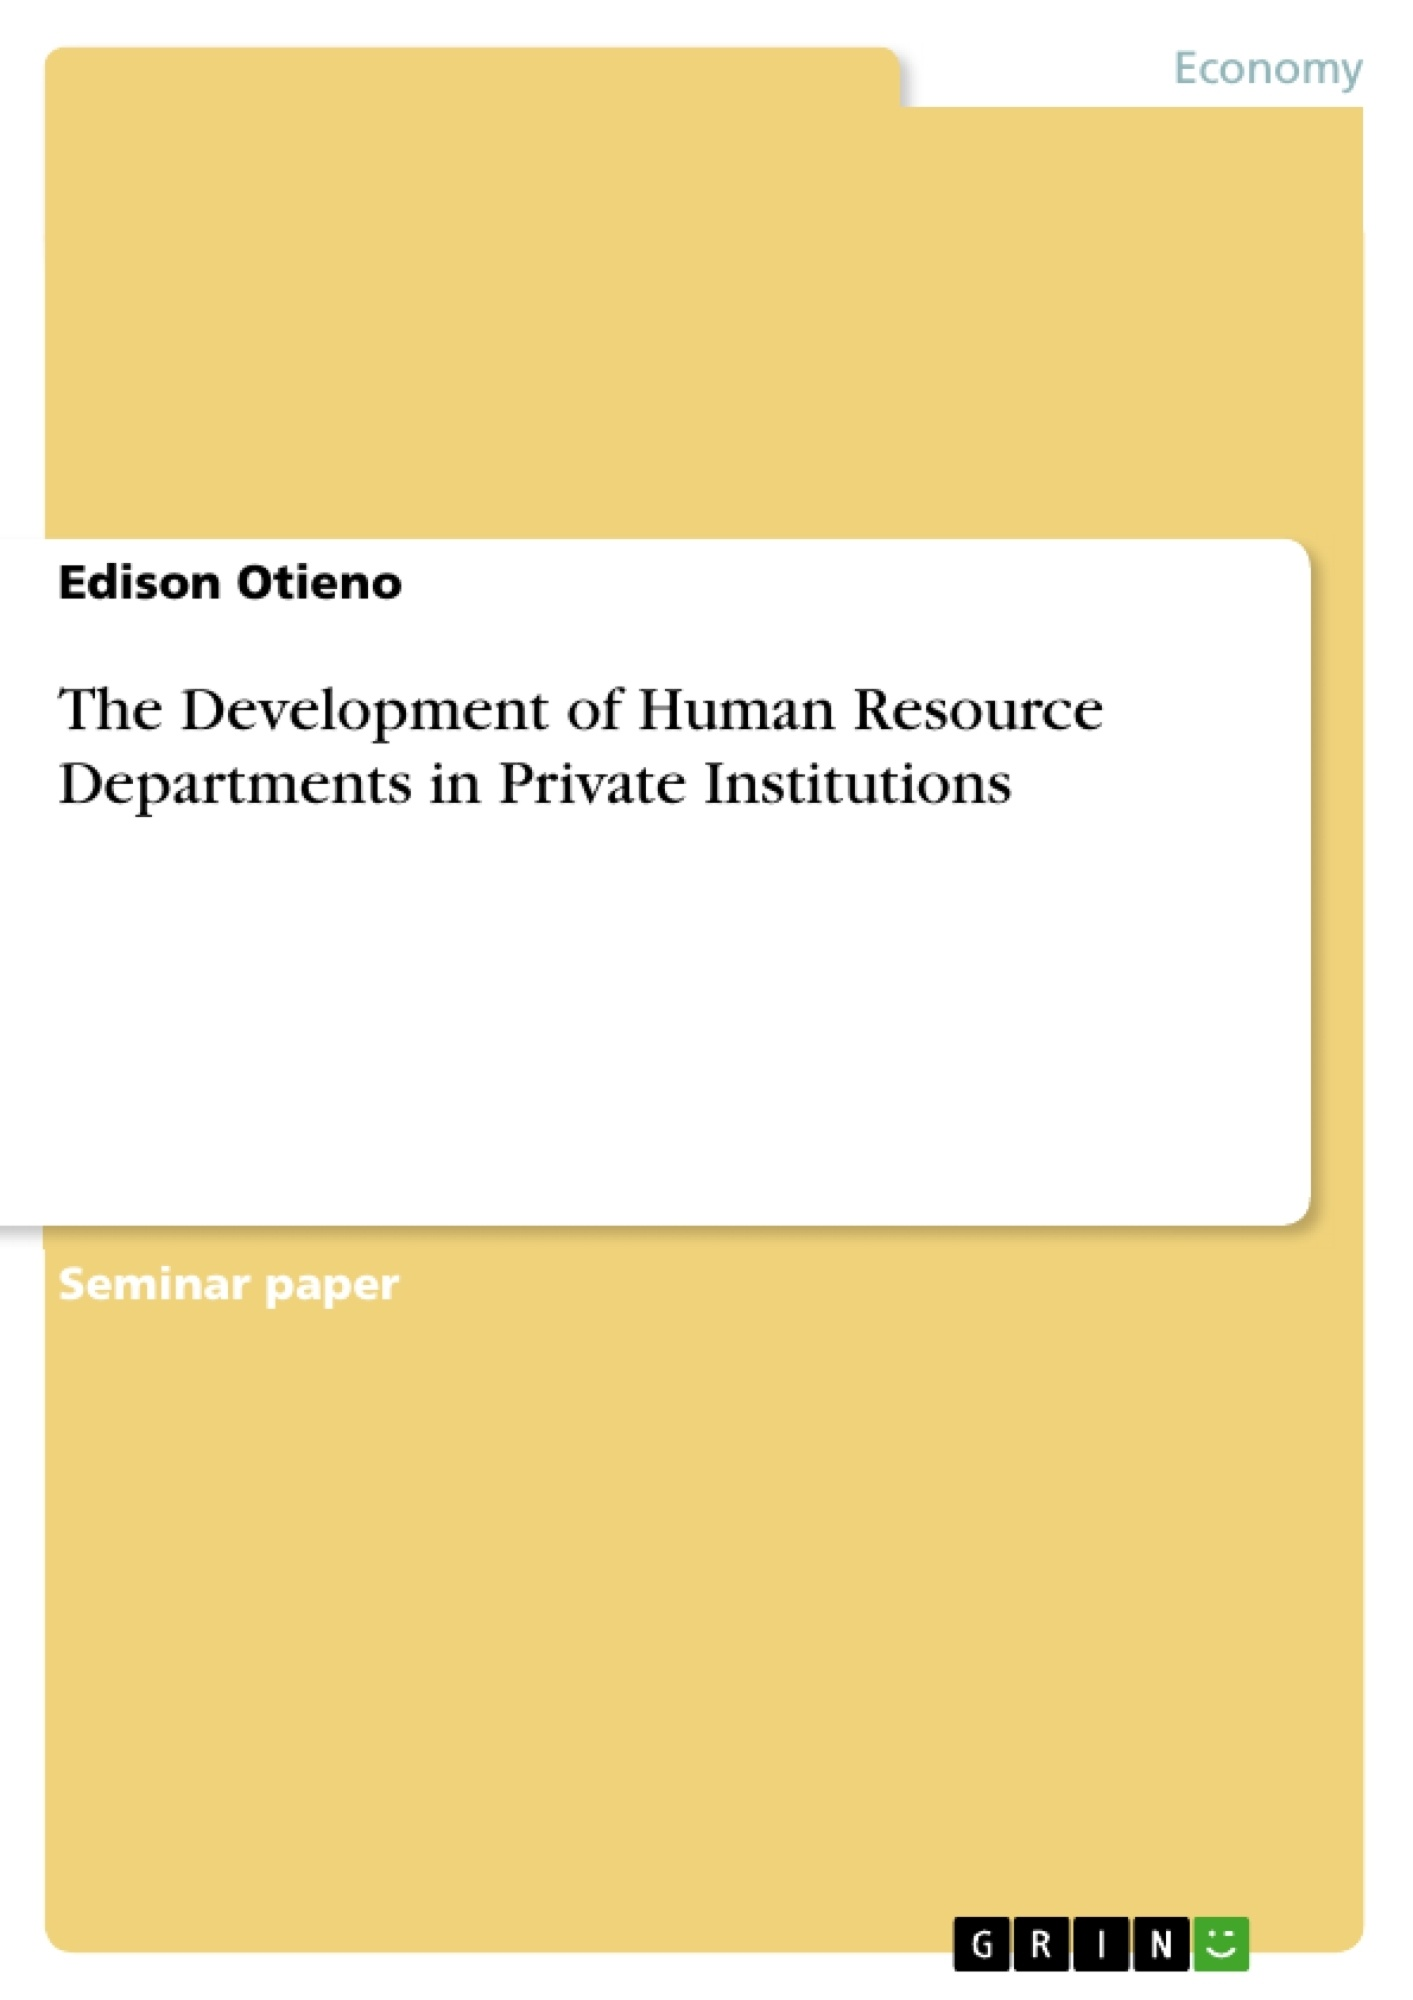 Title: The Development of Human Resource Departments in Private Institutions